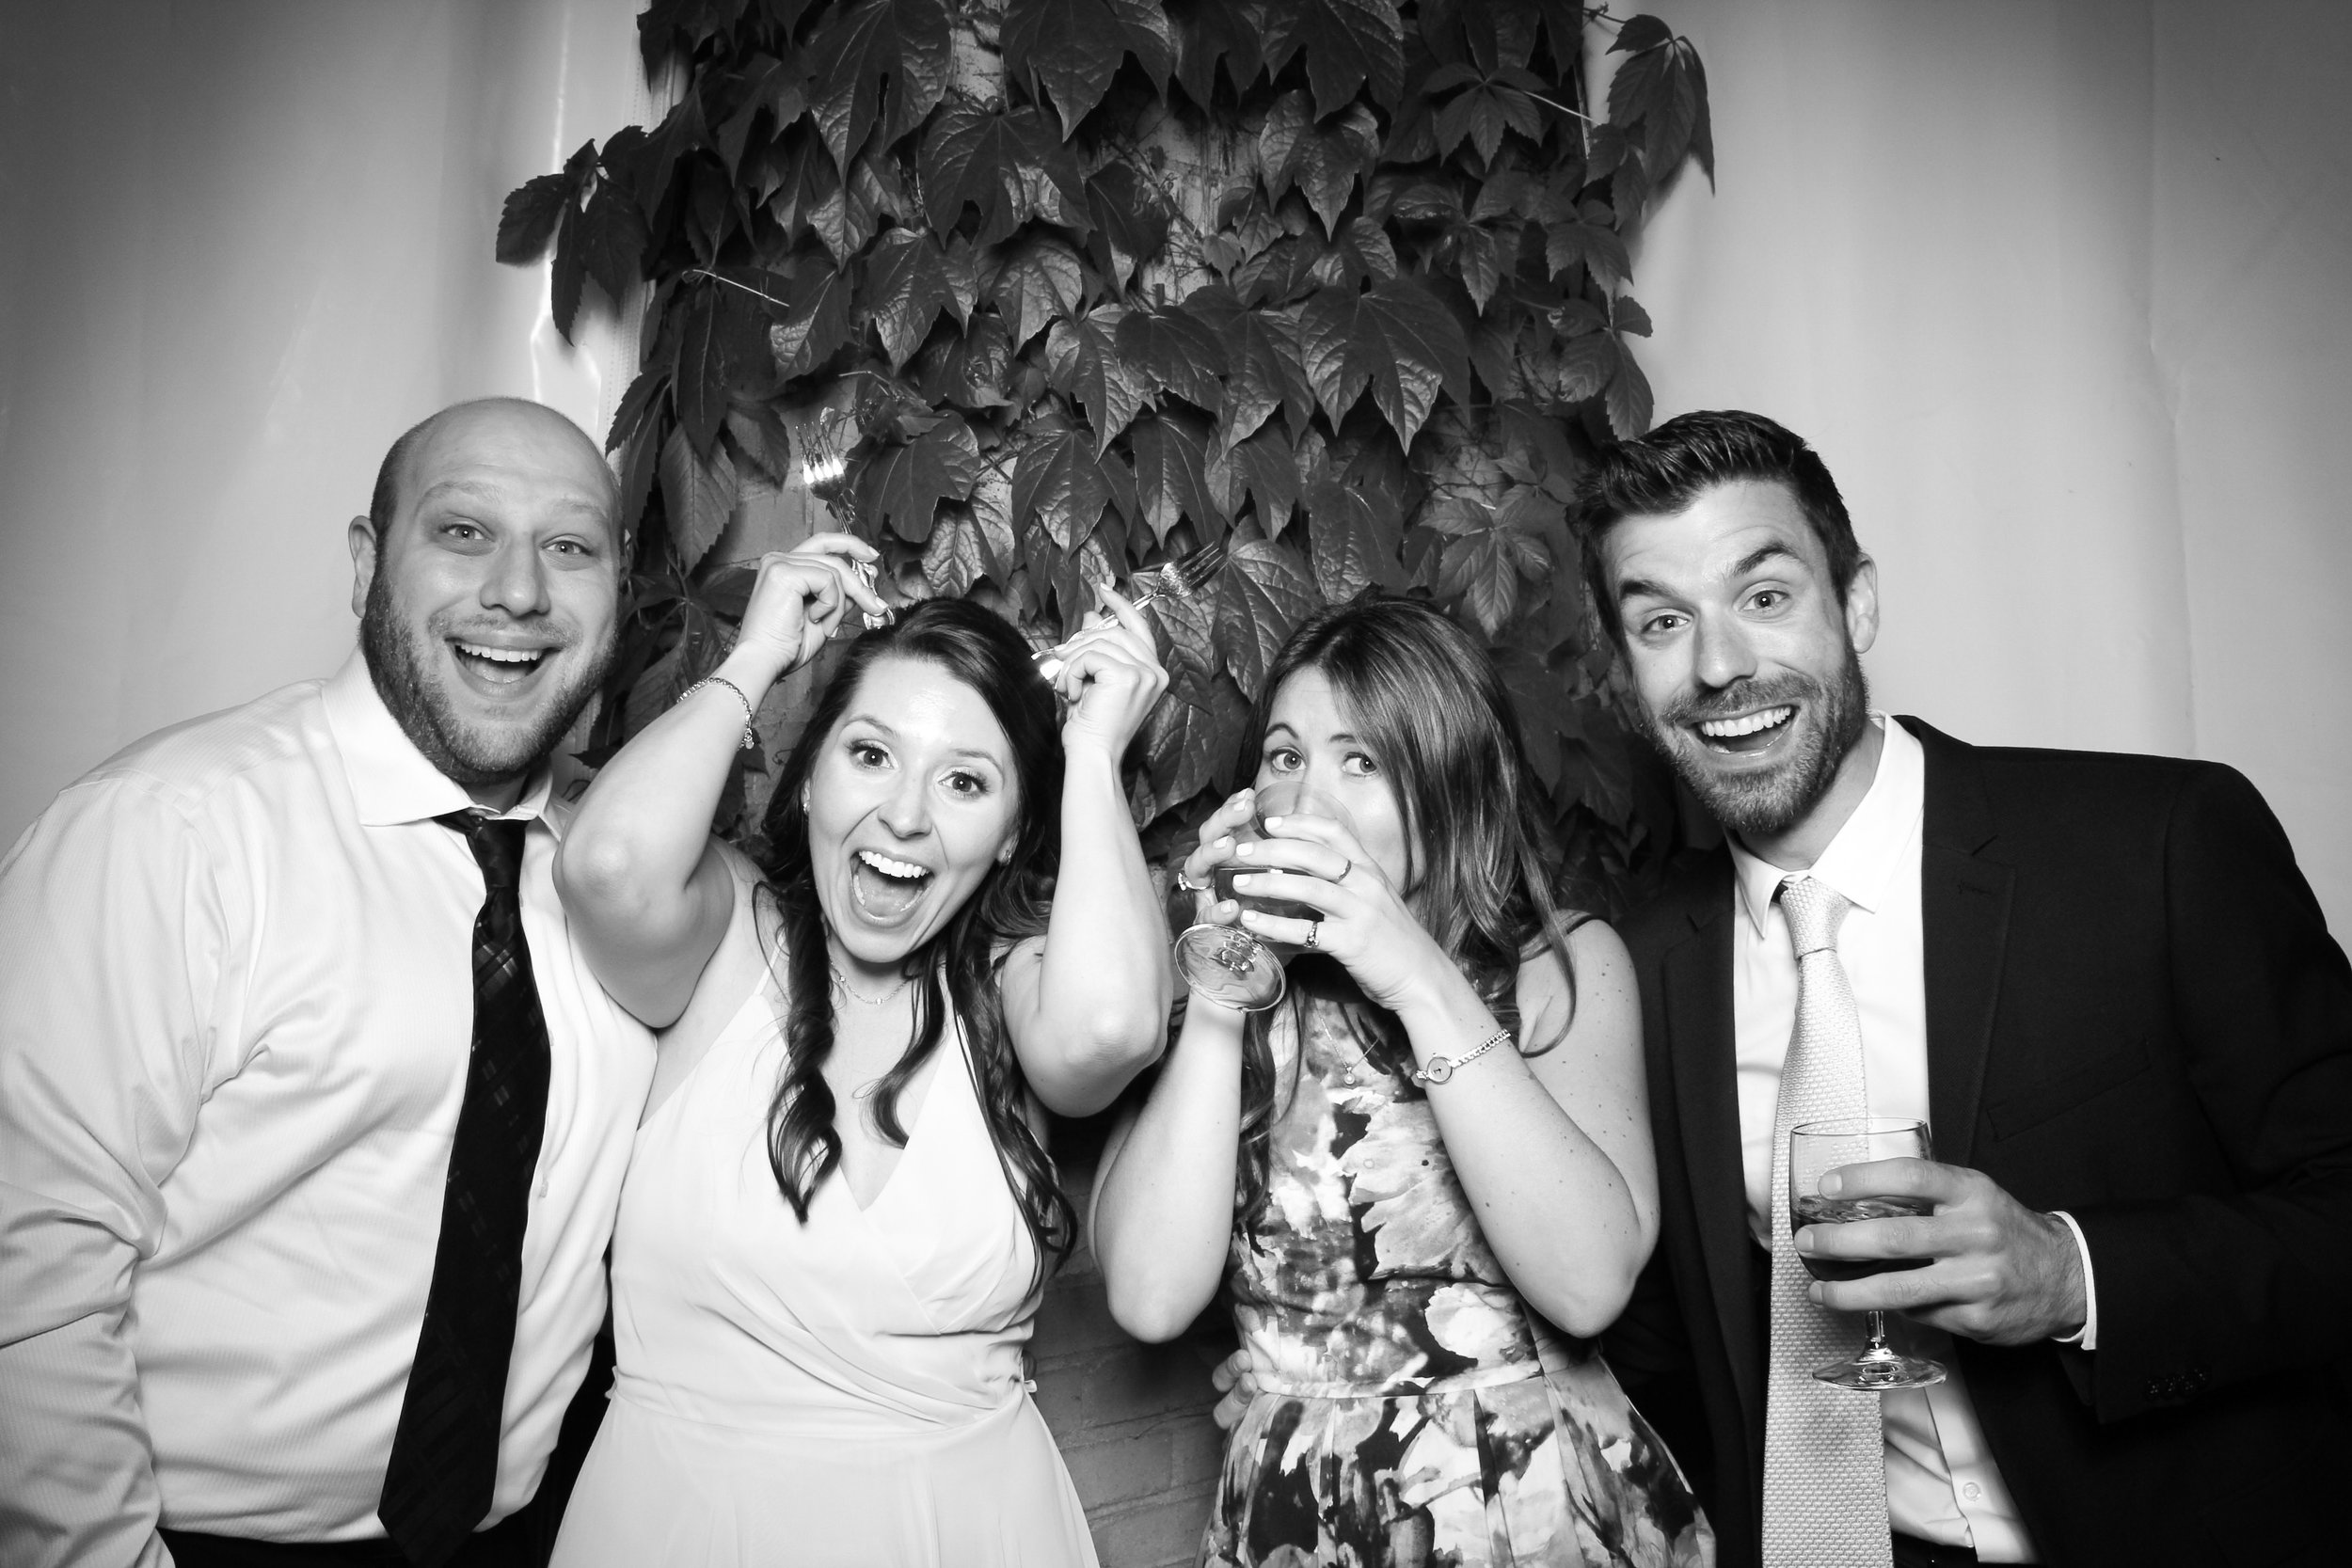 Chicago_Vintage_Wedding_Photobooth_Botanic_Garden_03.jpg